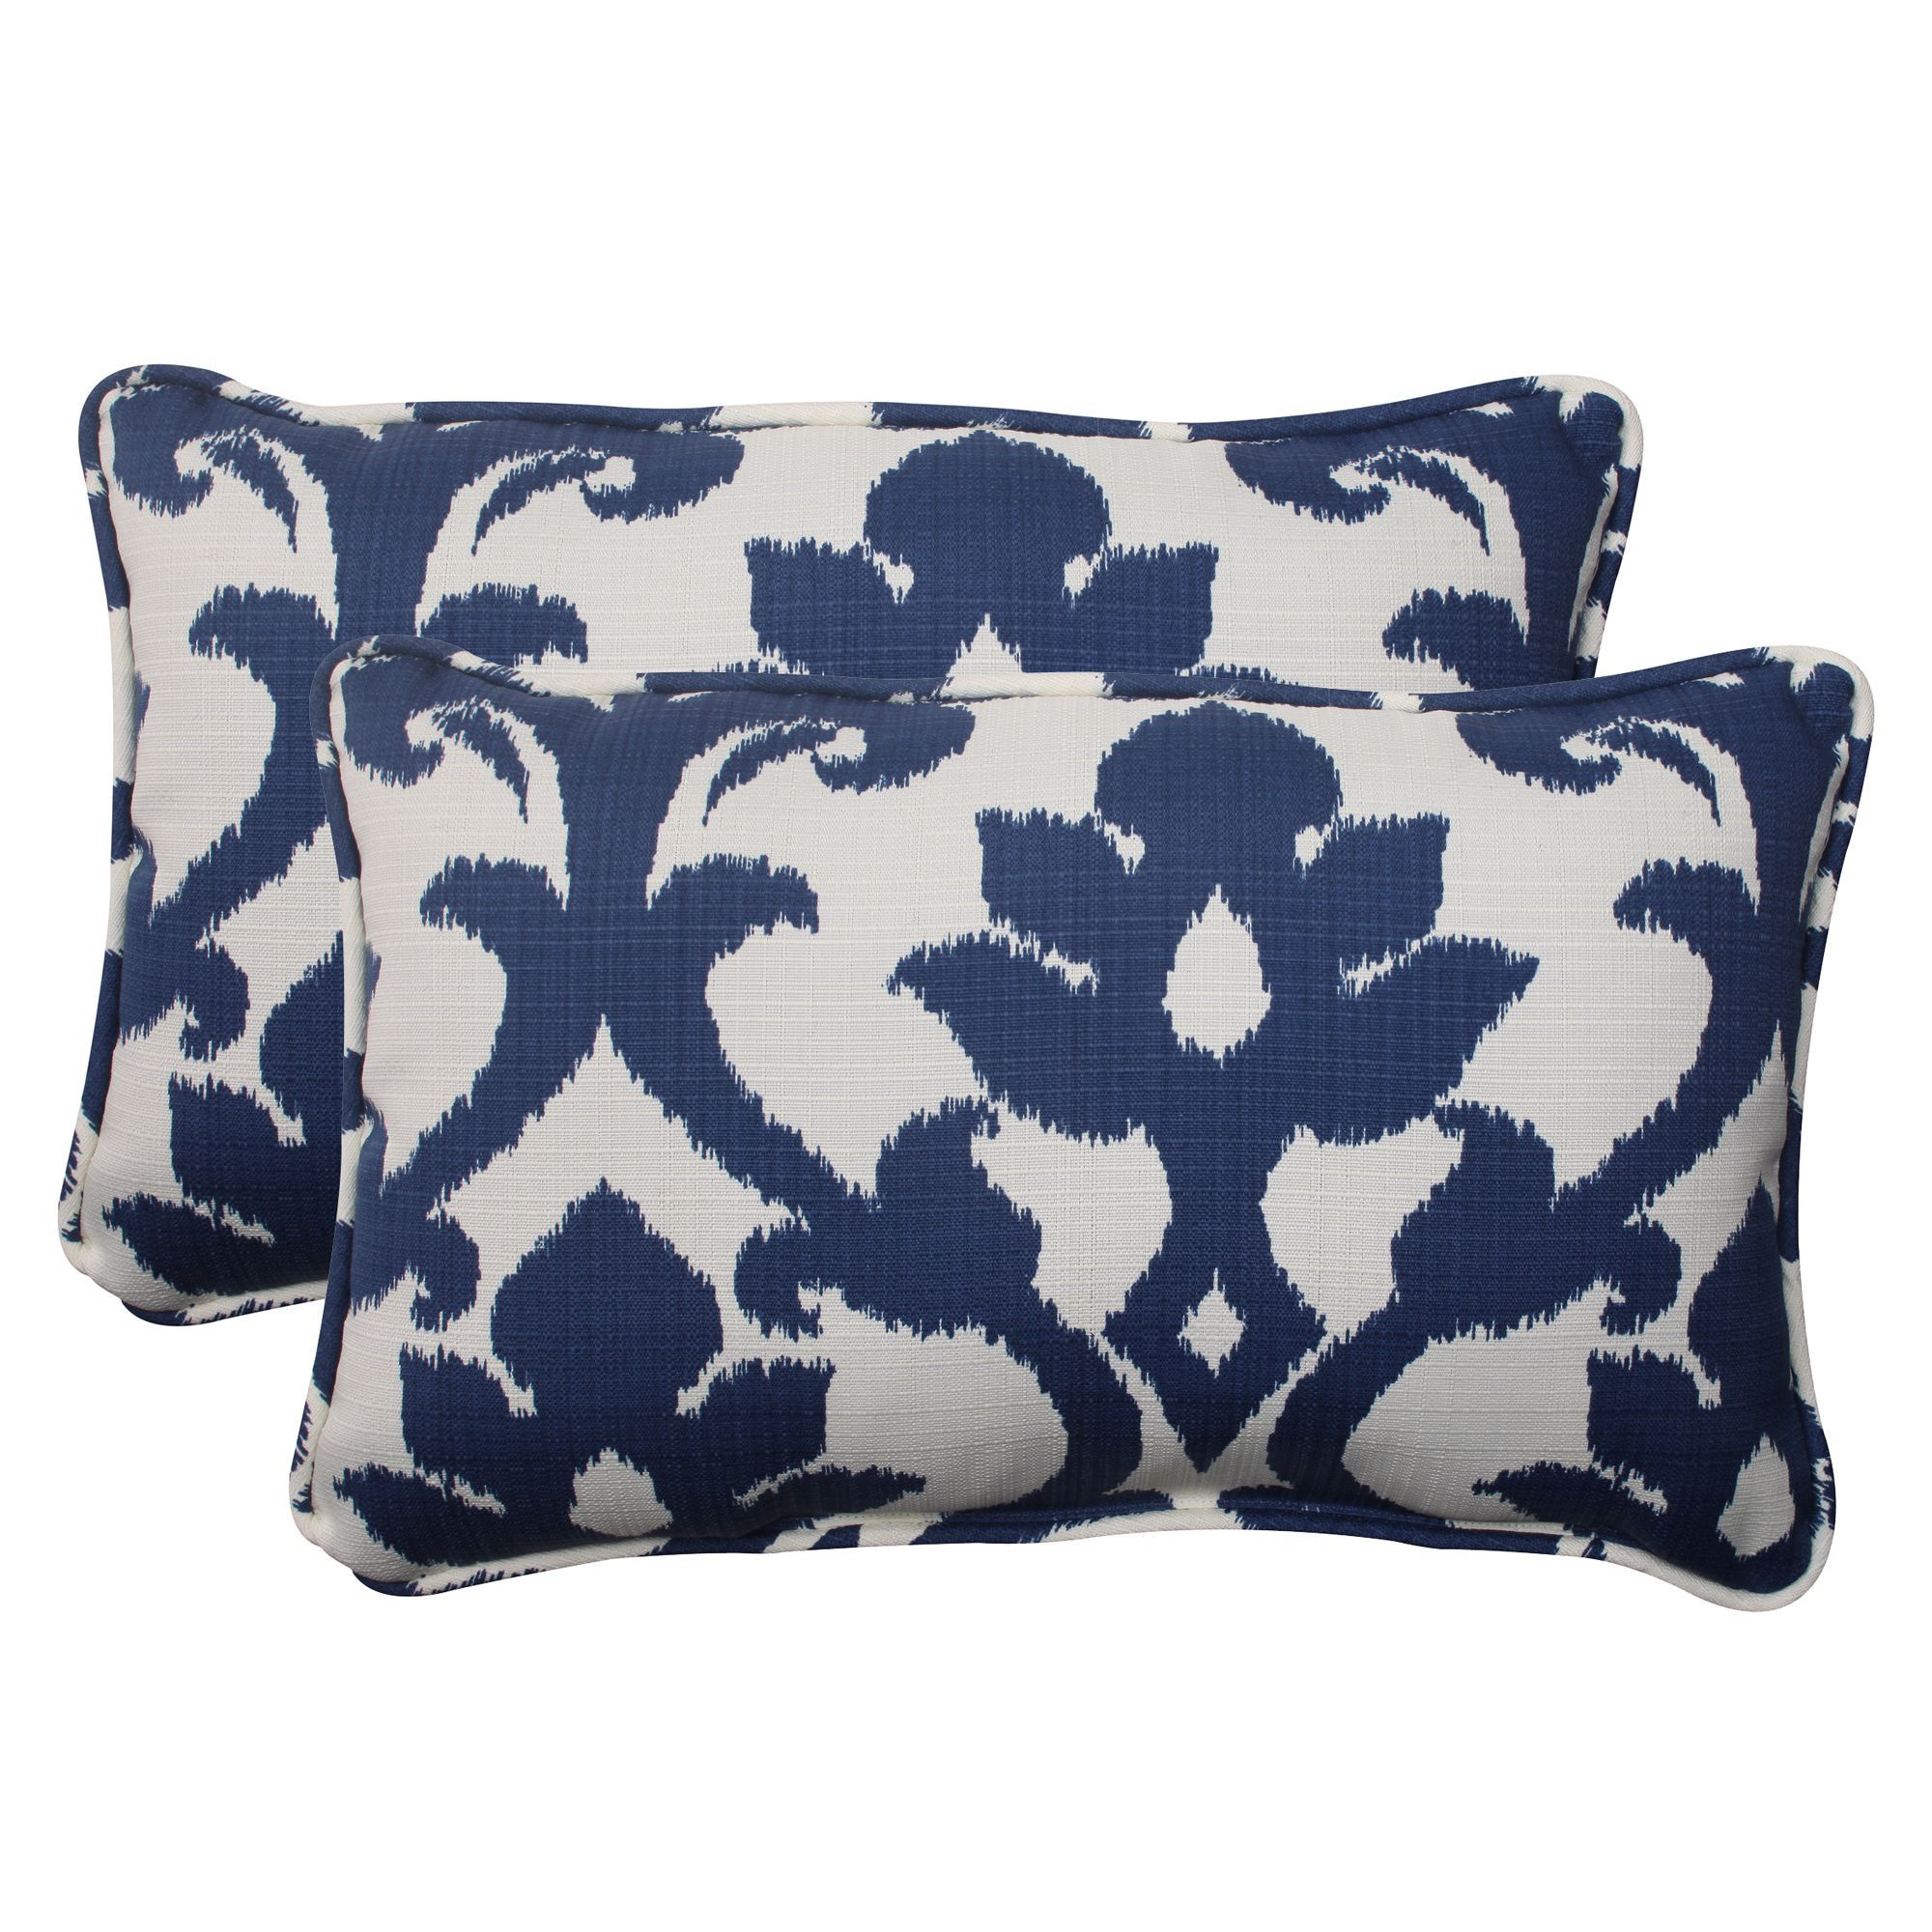 Pillow perfect navy outdoor throw pillows set of by pillow